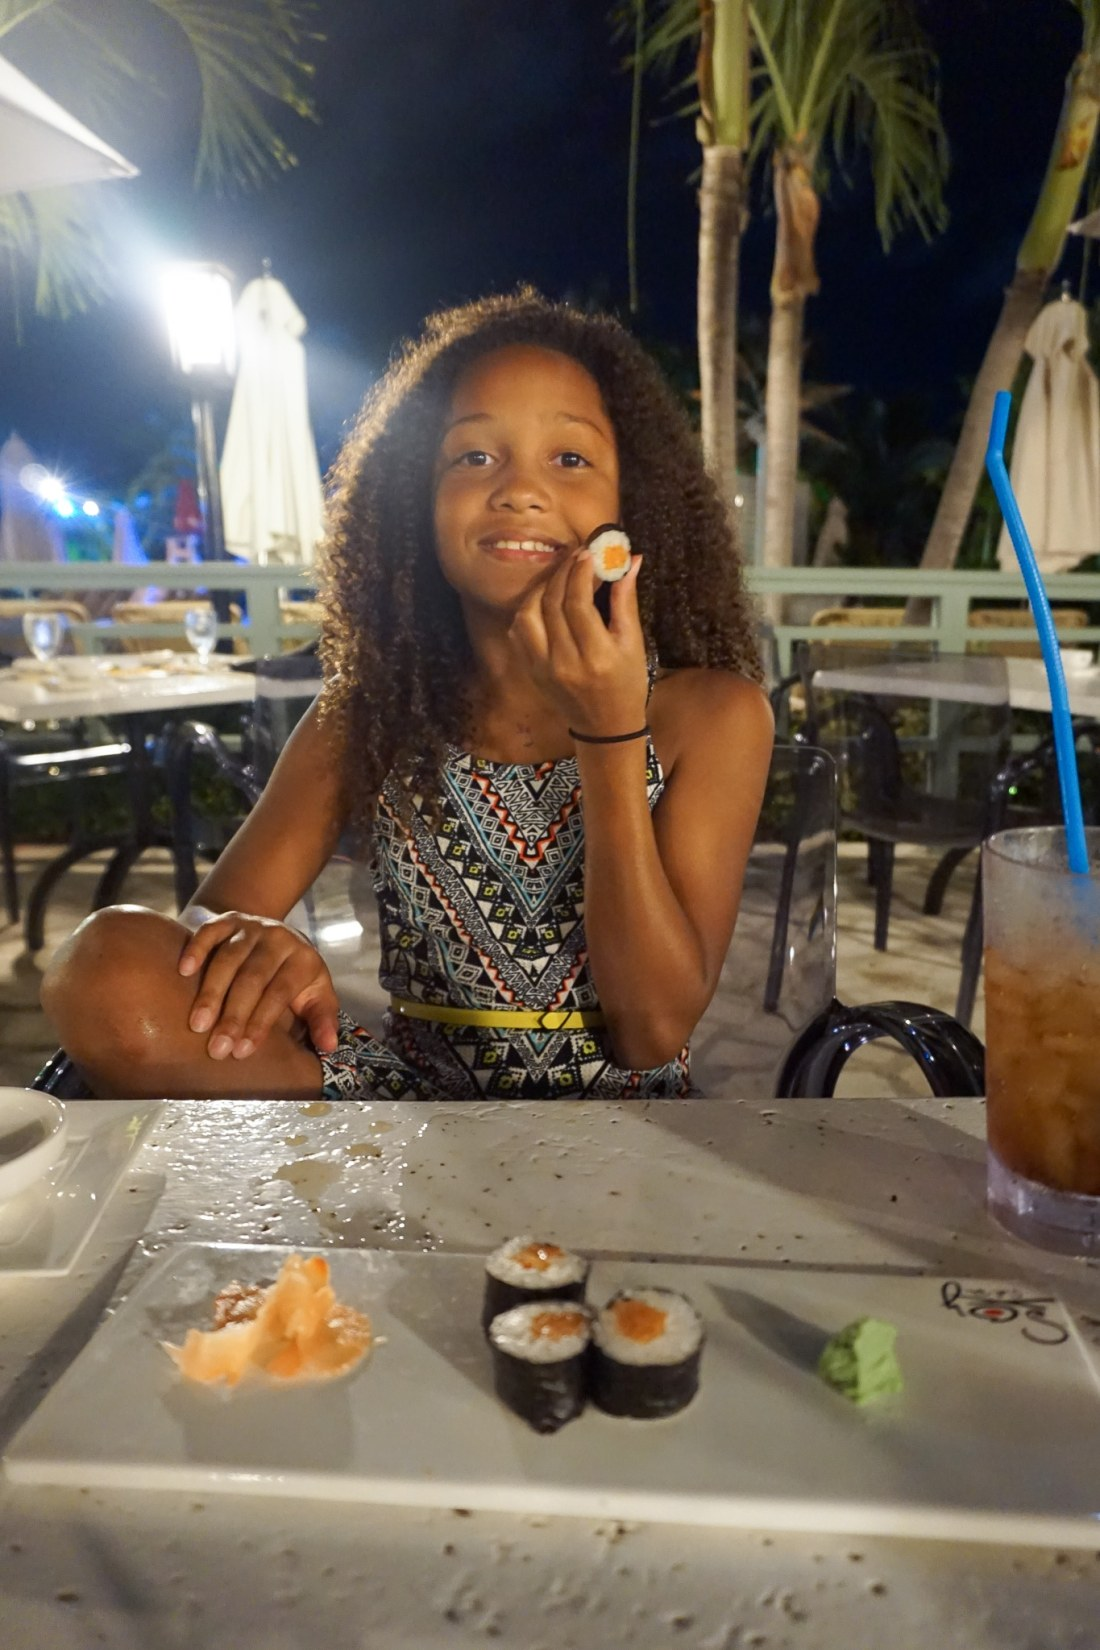 Keturah Sushi Birthday Beaches Resorts ini Turks and Caicos. Planning a trip to Beaches Resorts in Turks and Caicos? Learn about how you can celebrate your birthday in style during your next trip.